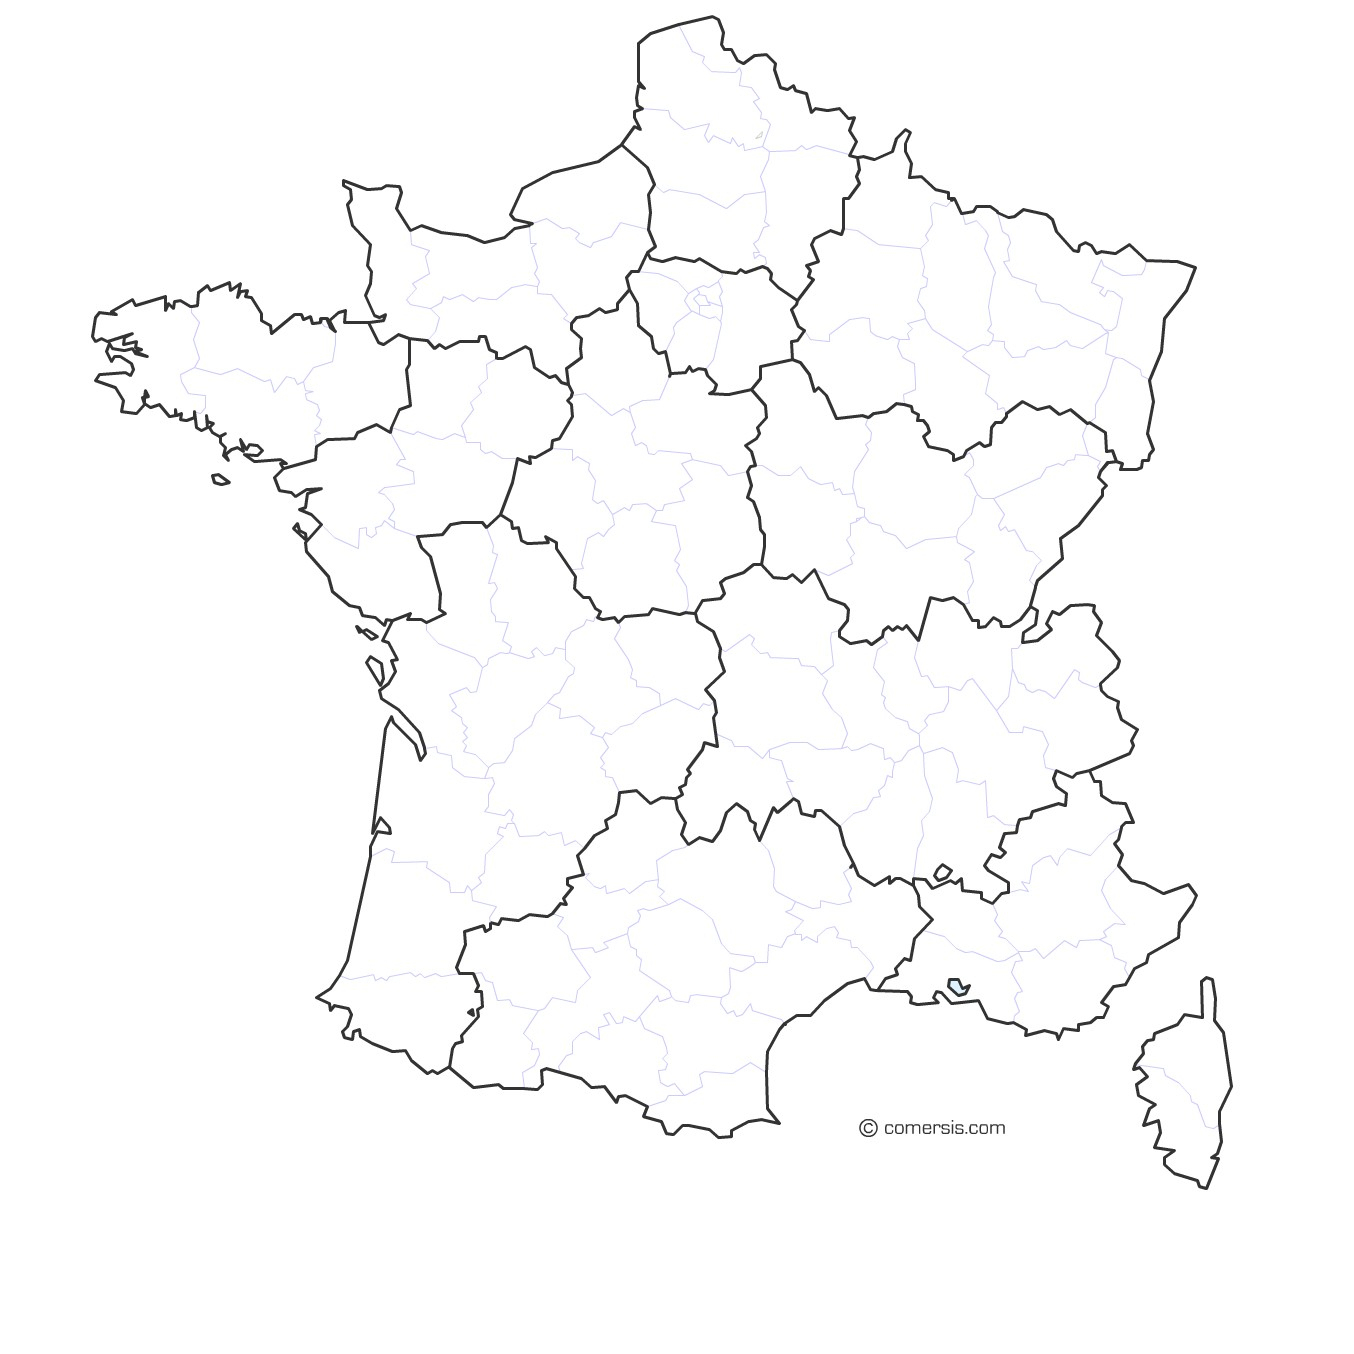 Carte France Par Regions Et Départements concernant Image Carte De France Avec Departement